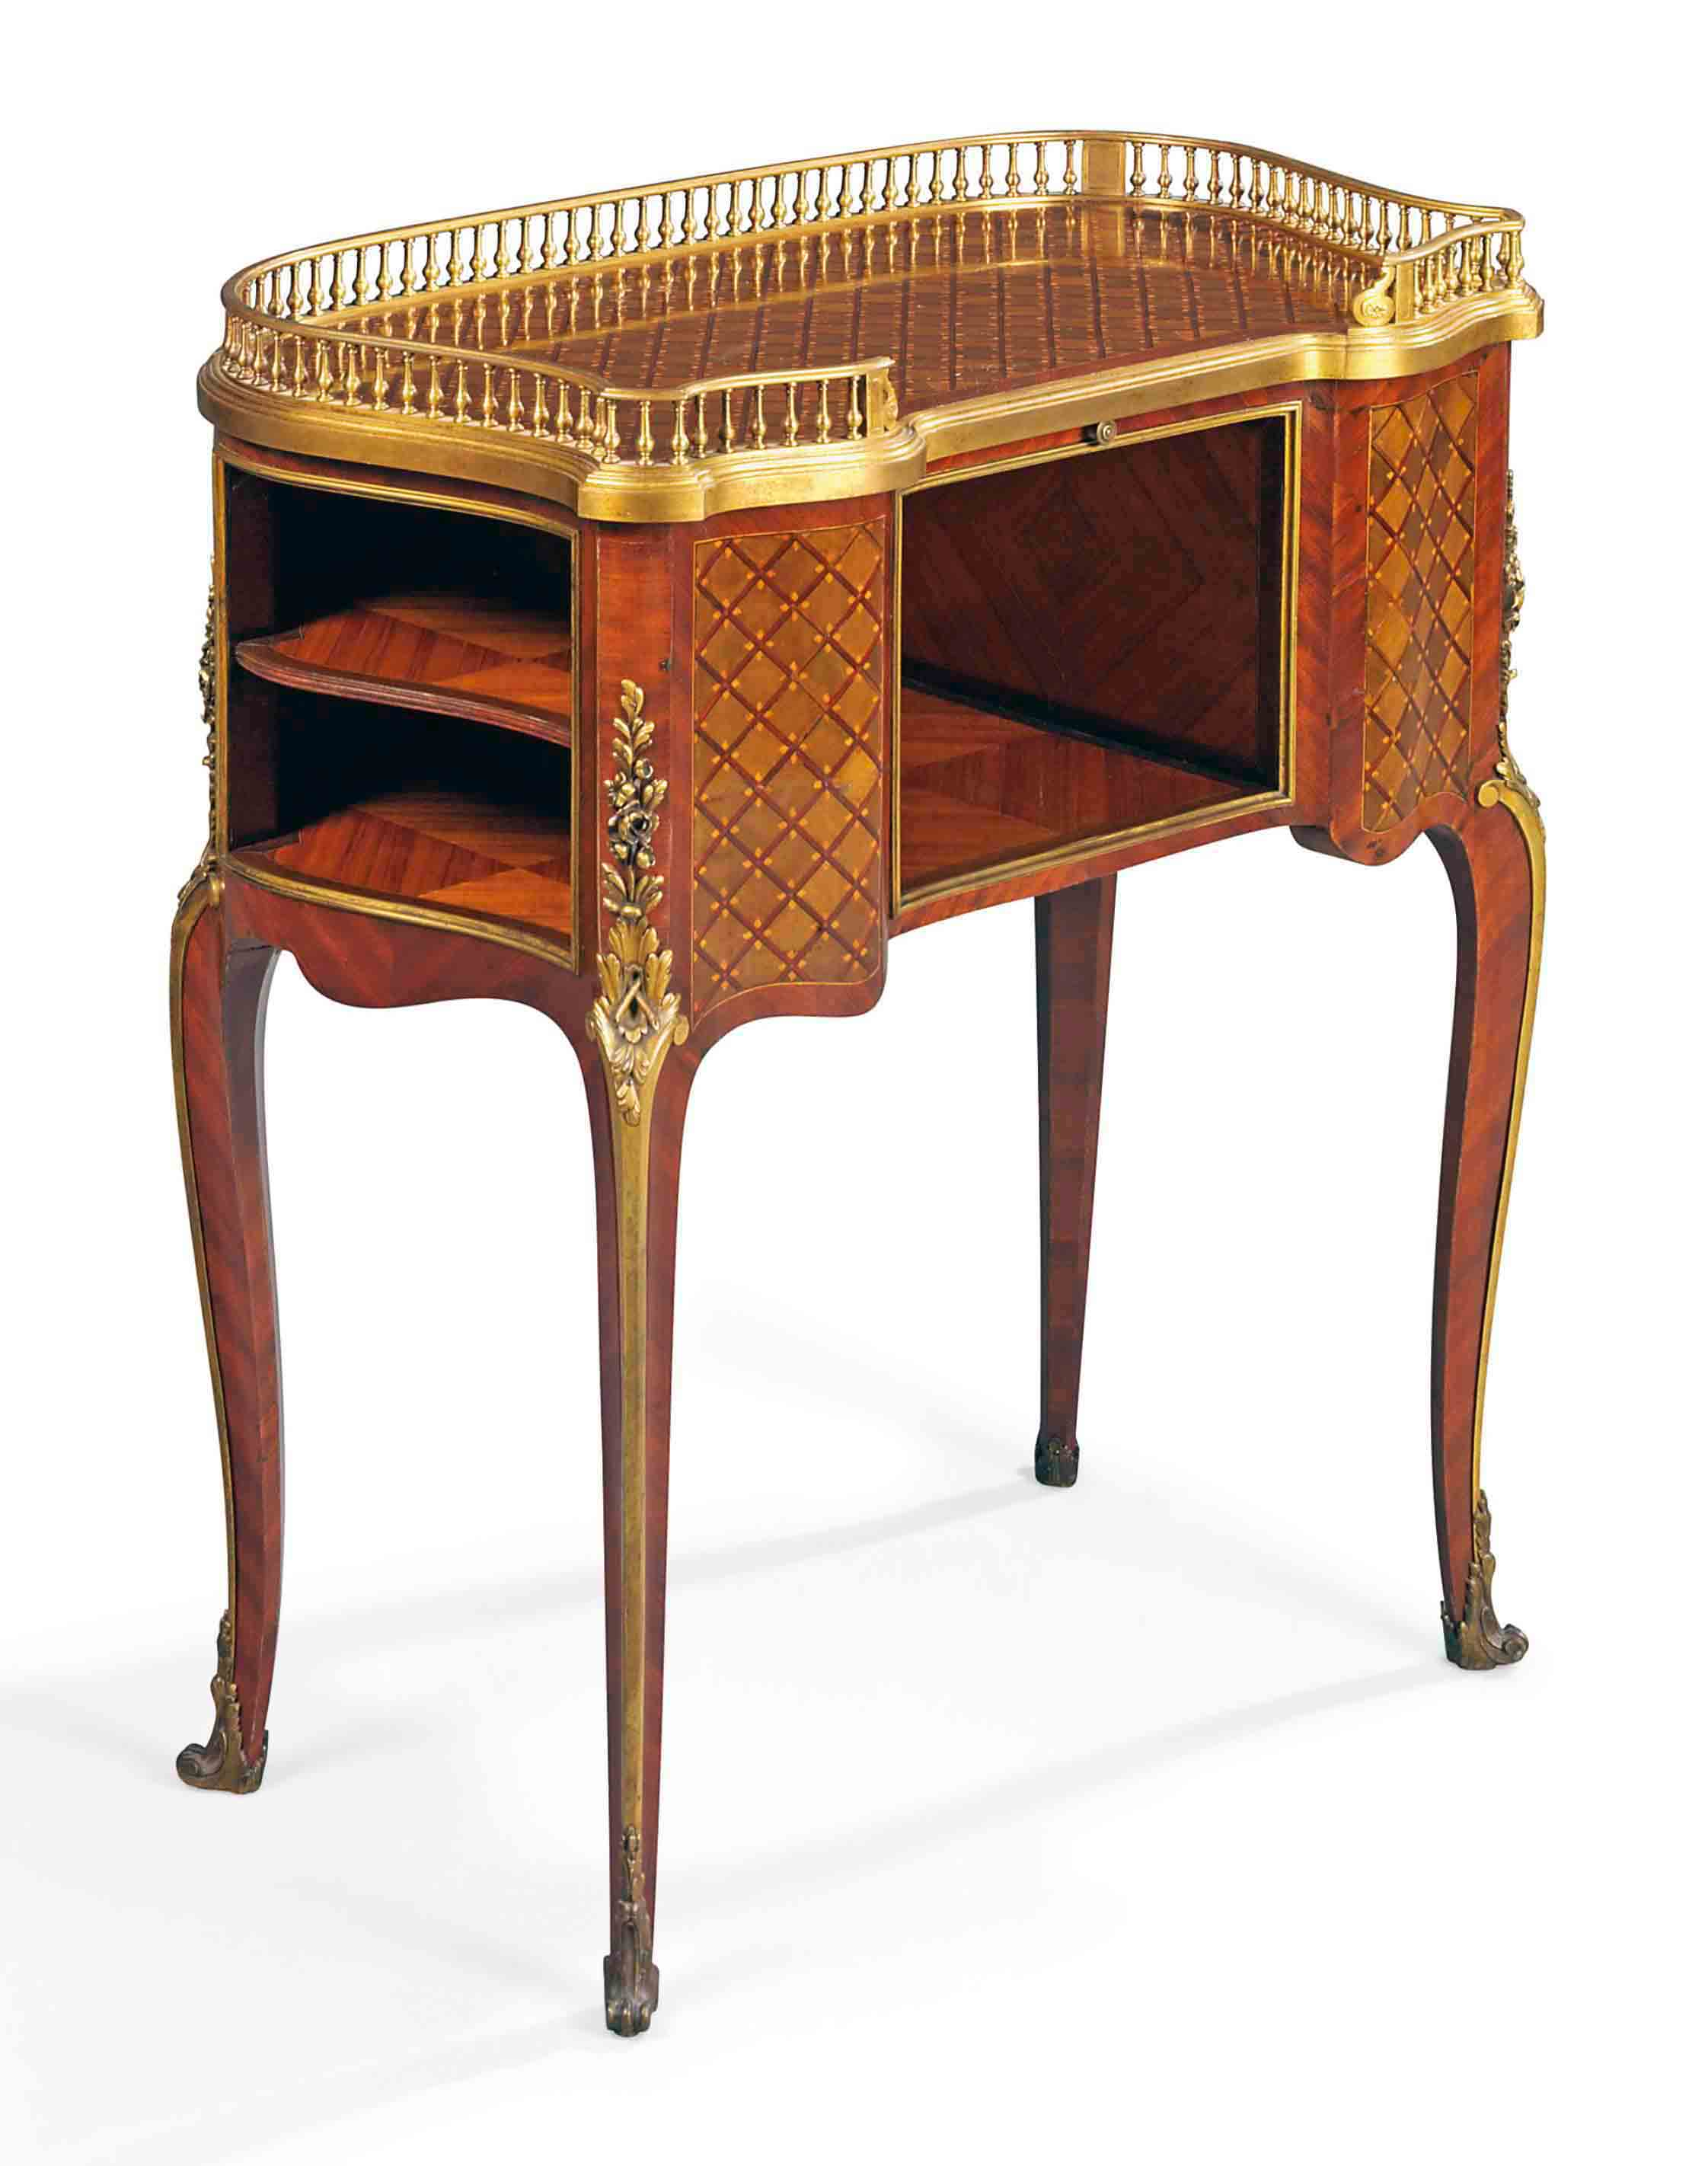 A FRENCH ORMOLU-MOUNTED AMARANTH AND HAREWOOD PARQUETRY TABLE DE TOILETTE